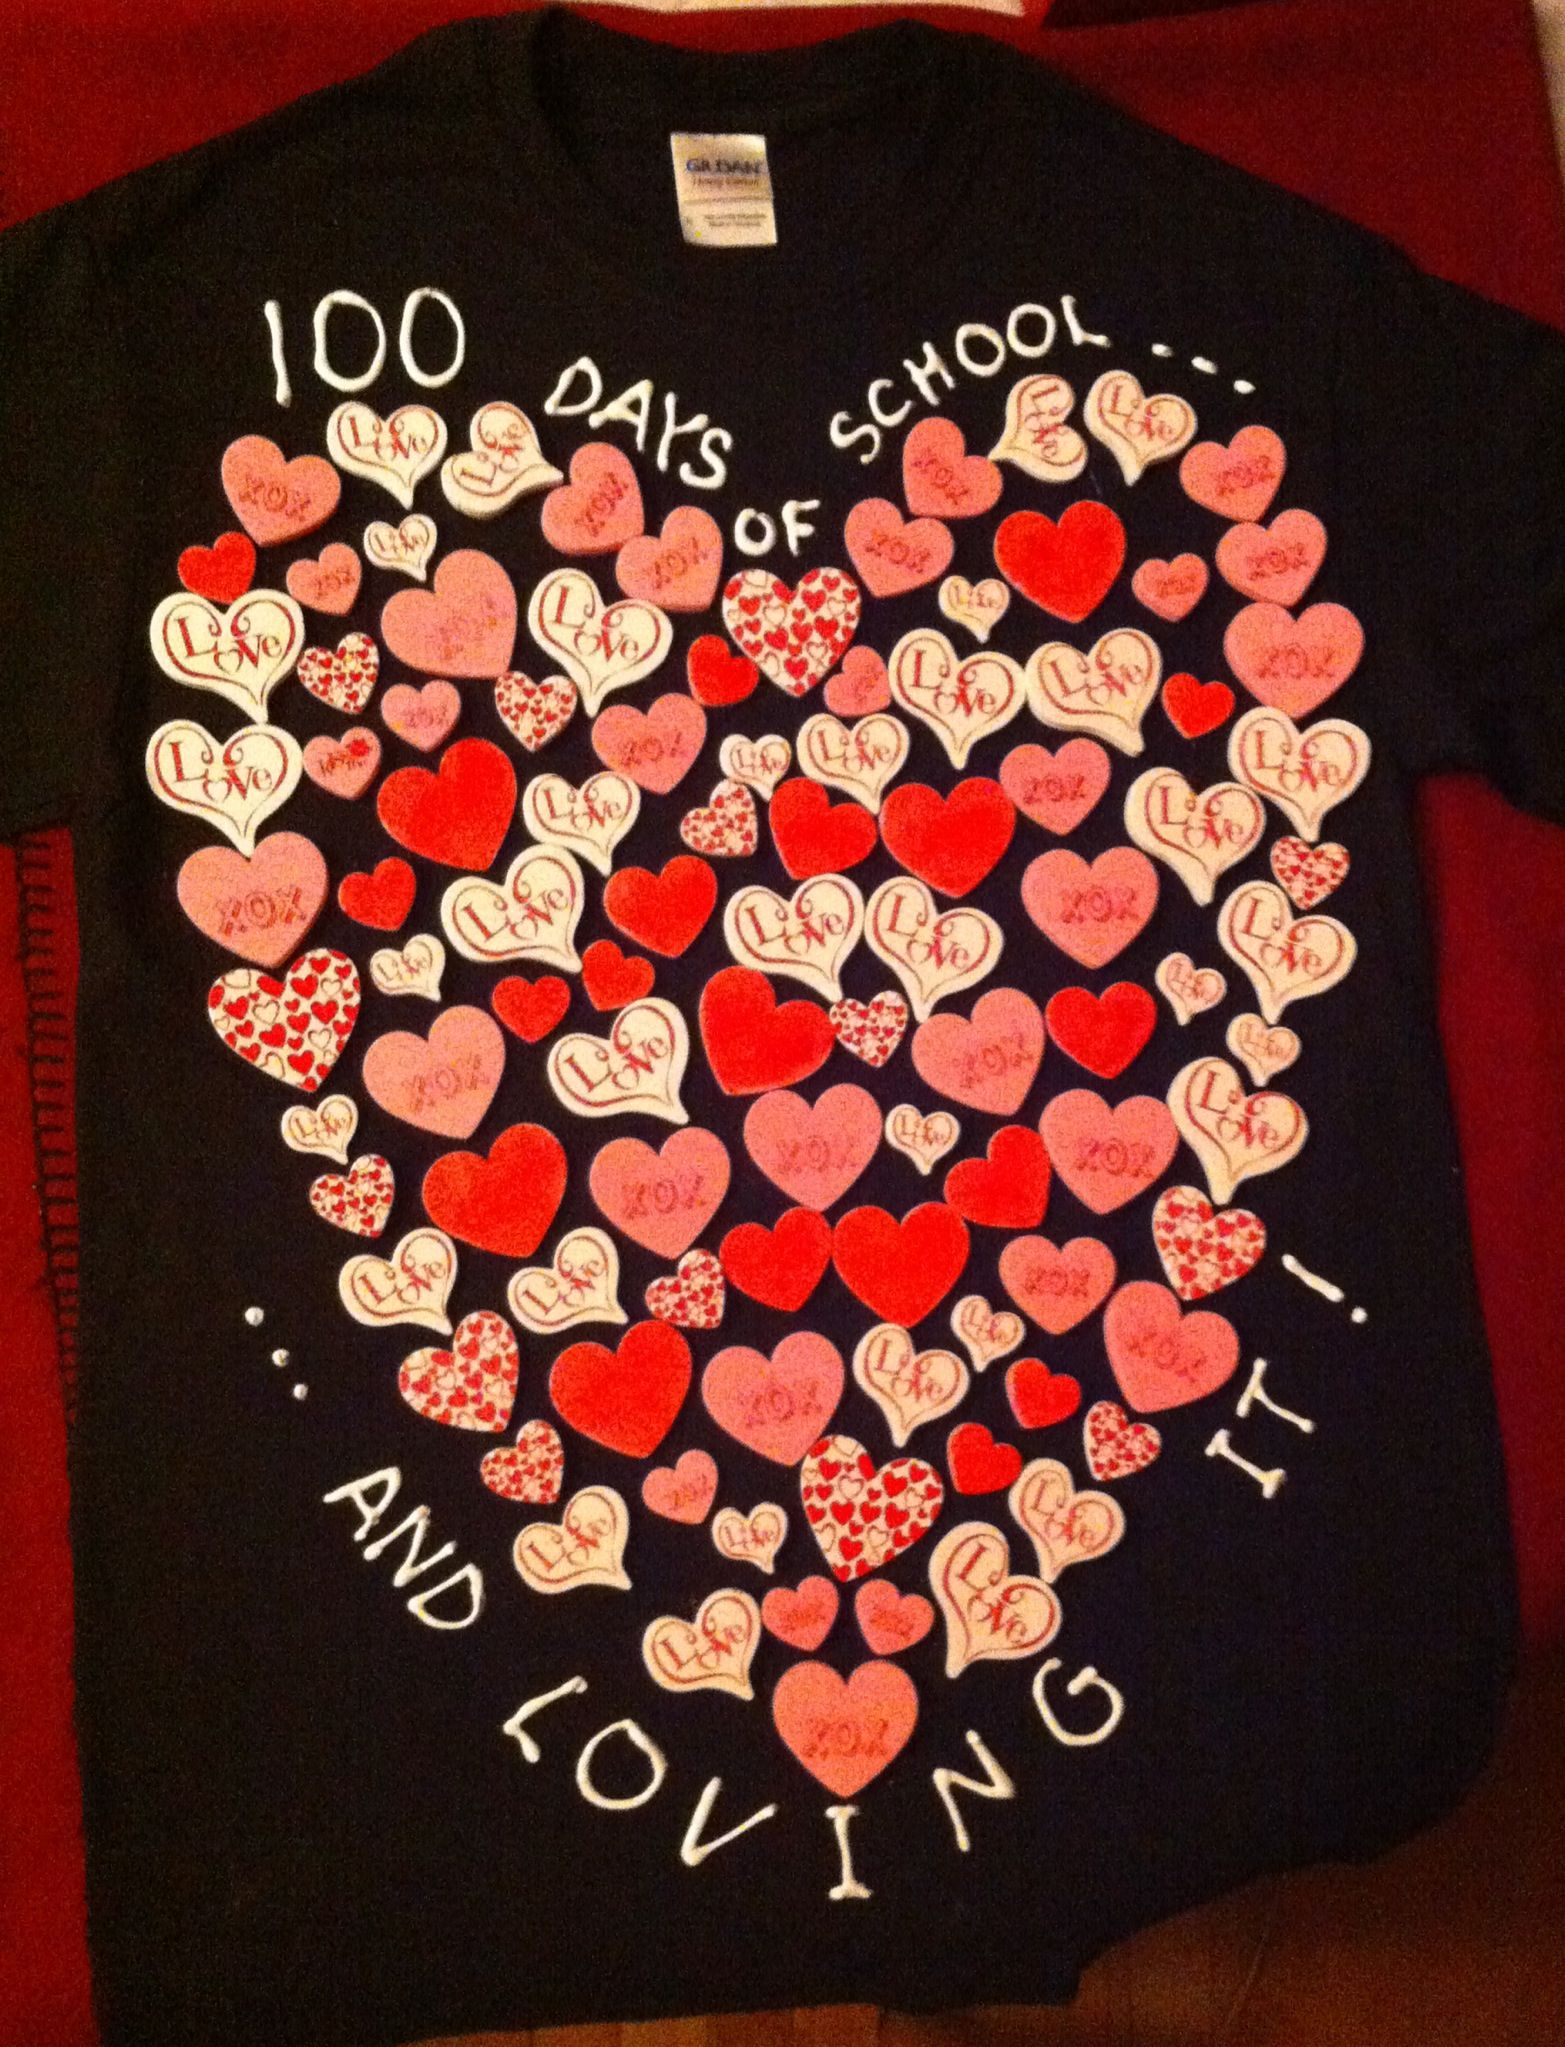 100th Day Of School Tshirt I Made For Our 100th Day Fashion Show